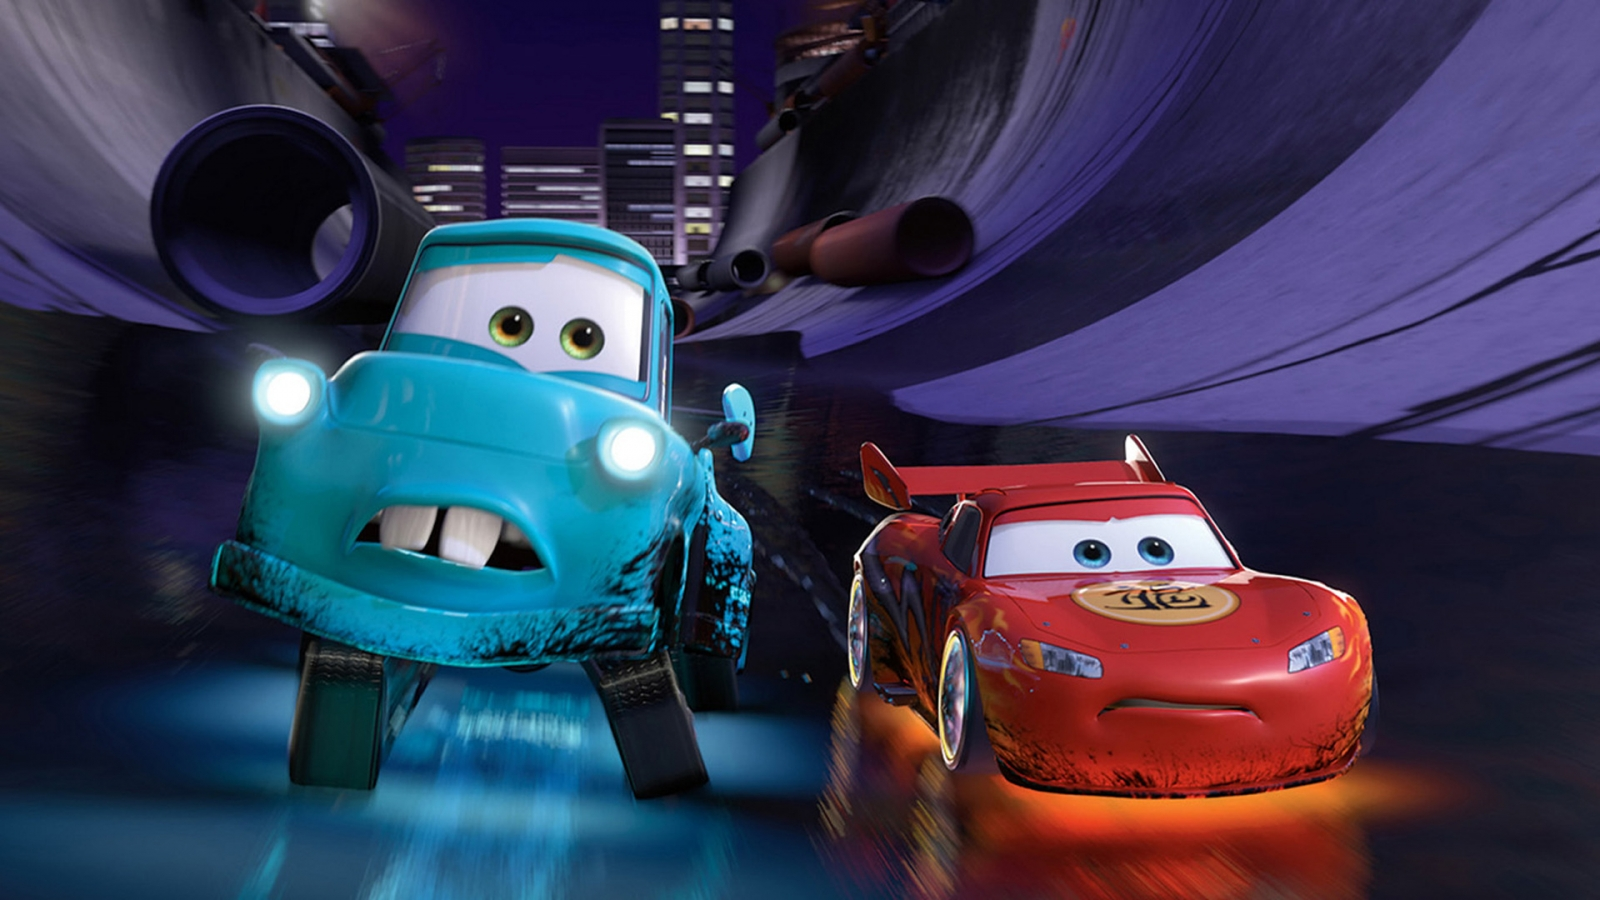 Cars 2 Lightning McQueen and Mater for 1600 x 900 HDTV resolution